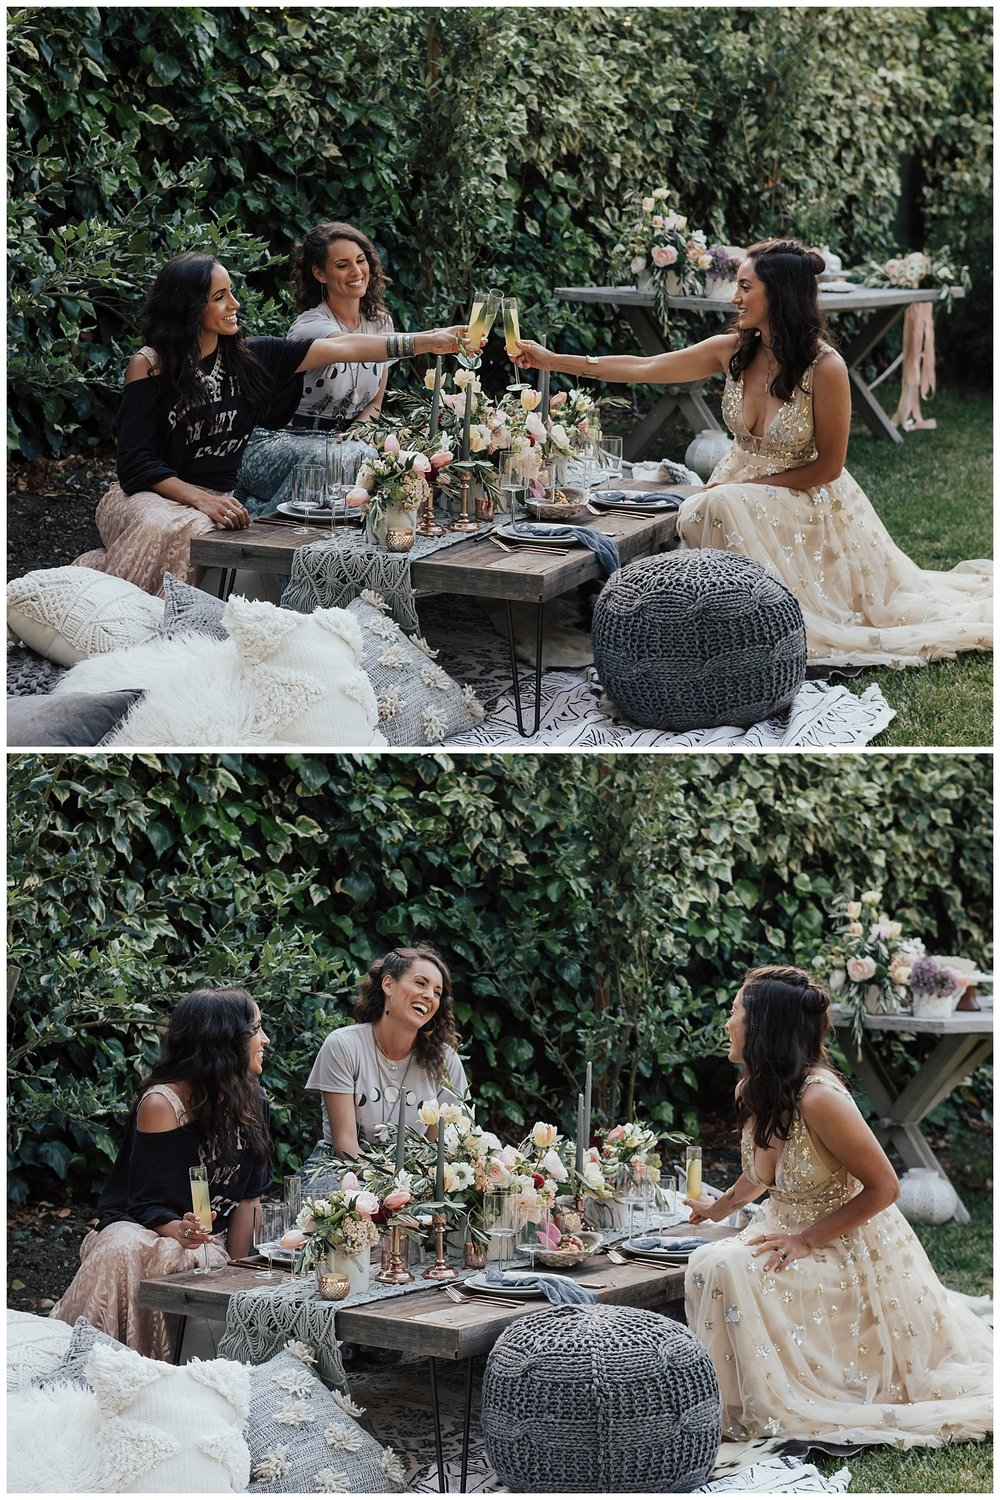 bachelorette-party-inspiration-ideas.jpg